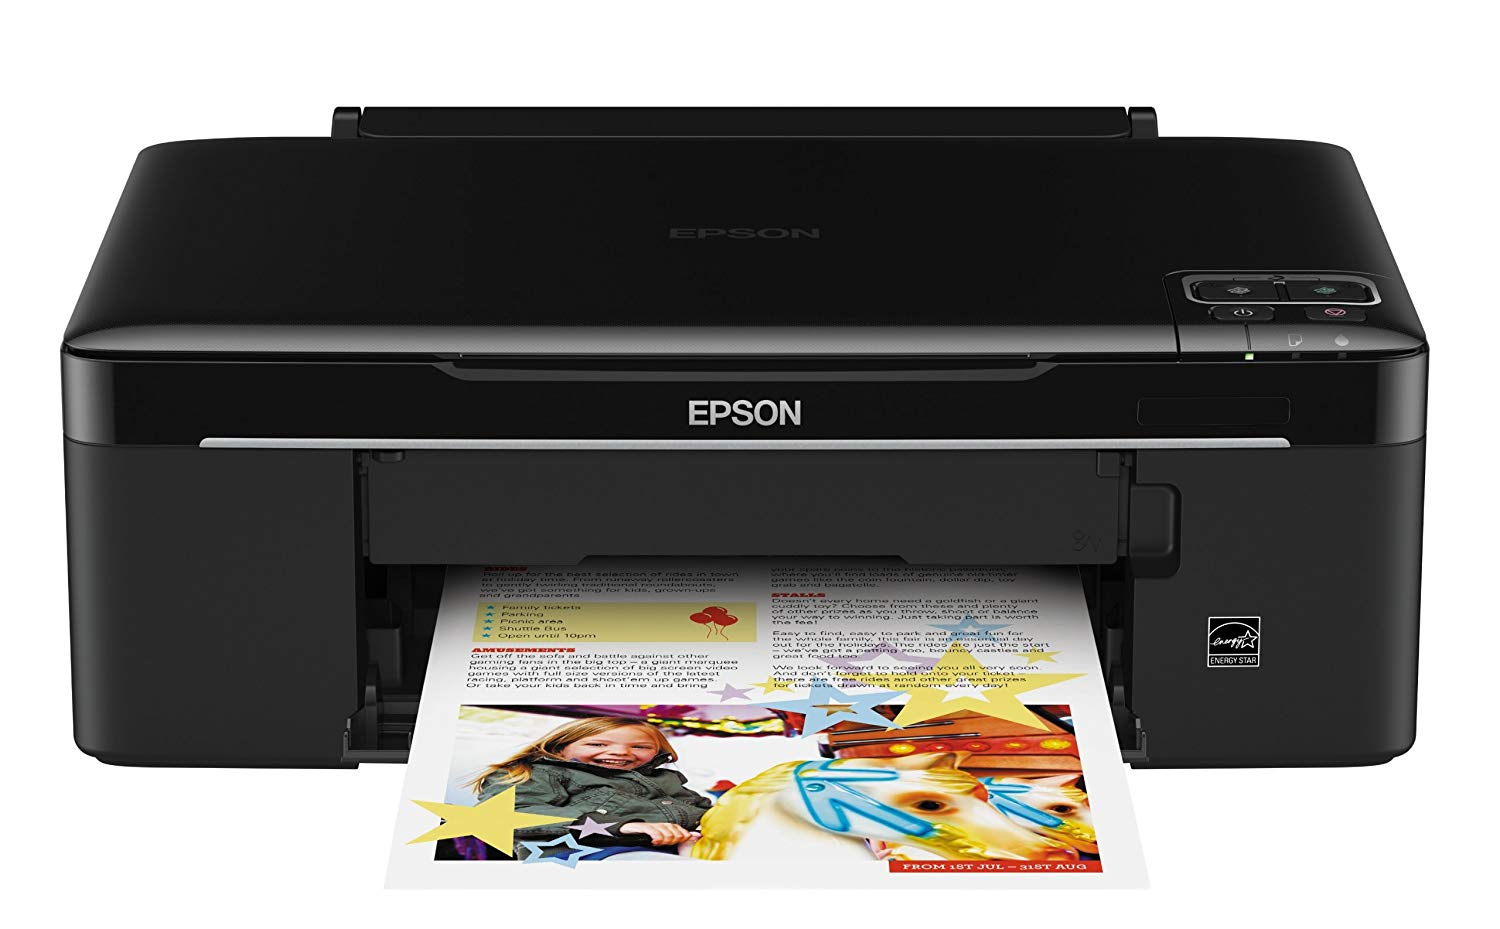 epson stylus sx130 scanner software download